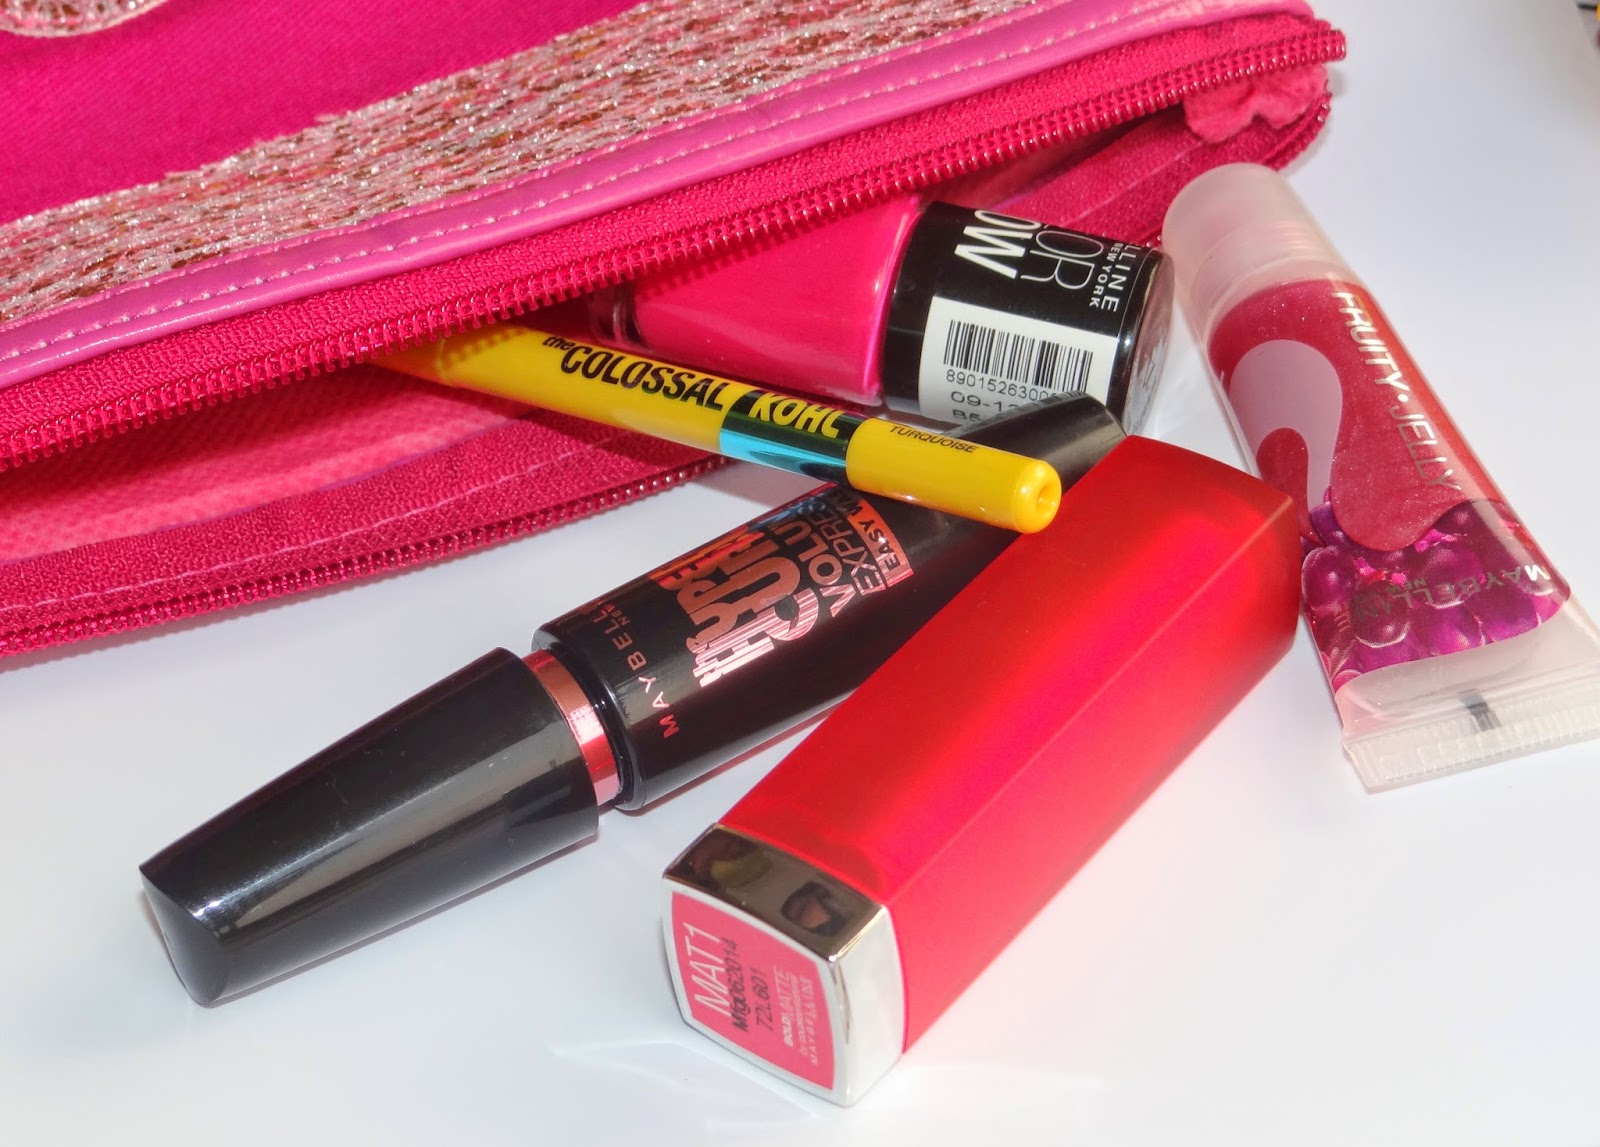 Maybelline vday gift kit